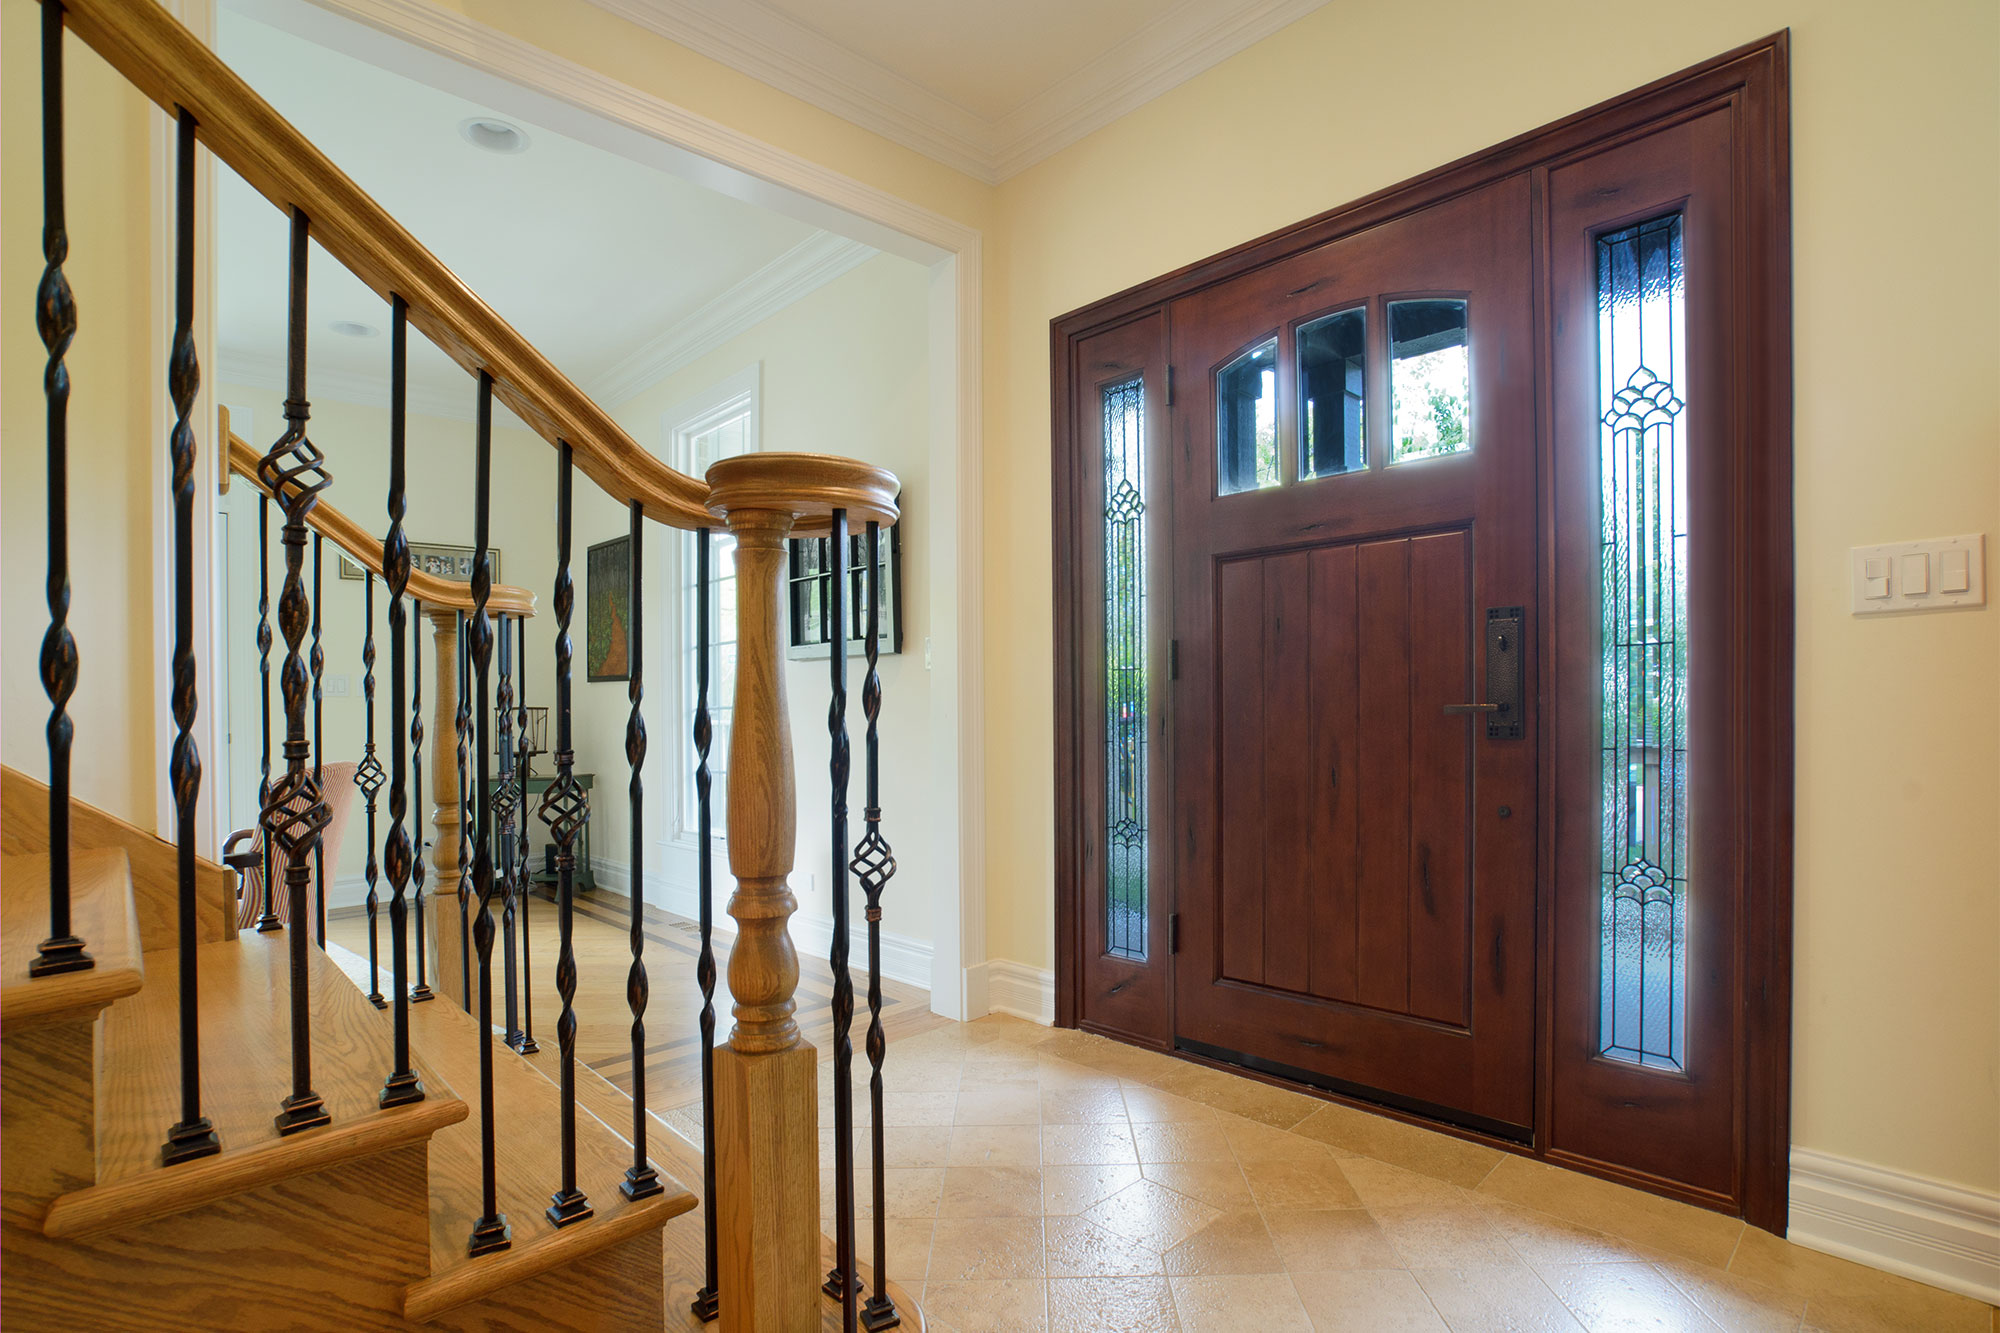 2203 Glenview   Entry Door   Globex Developments Custom Homes. Entry Door  #2542203 Glenview